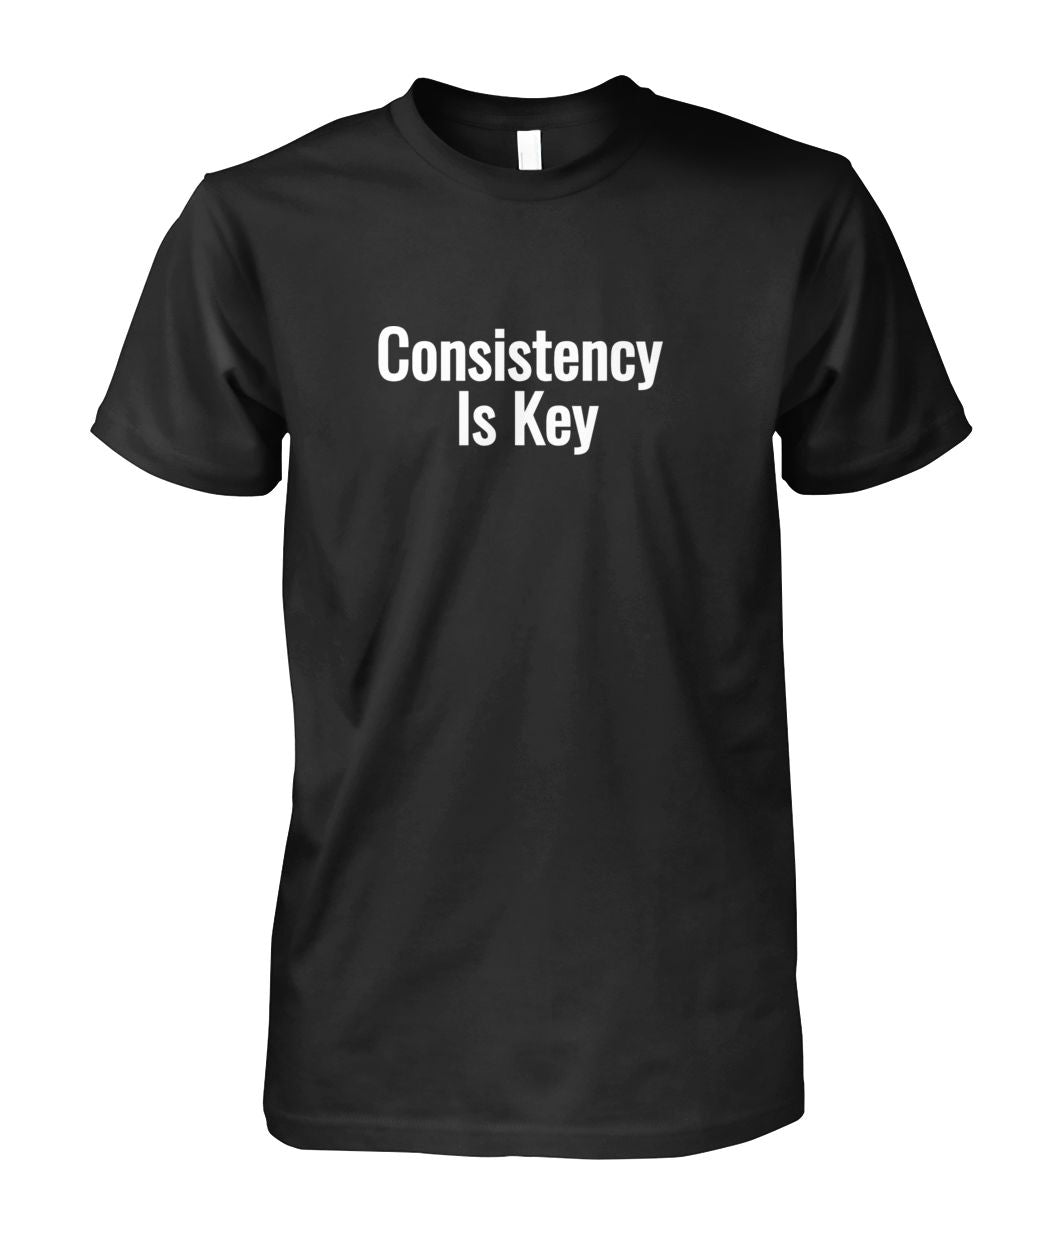 Consistency is key tshirt